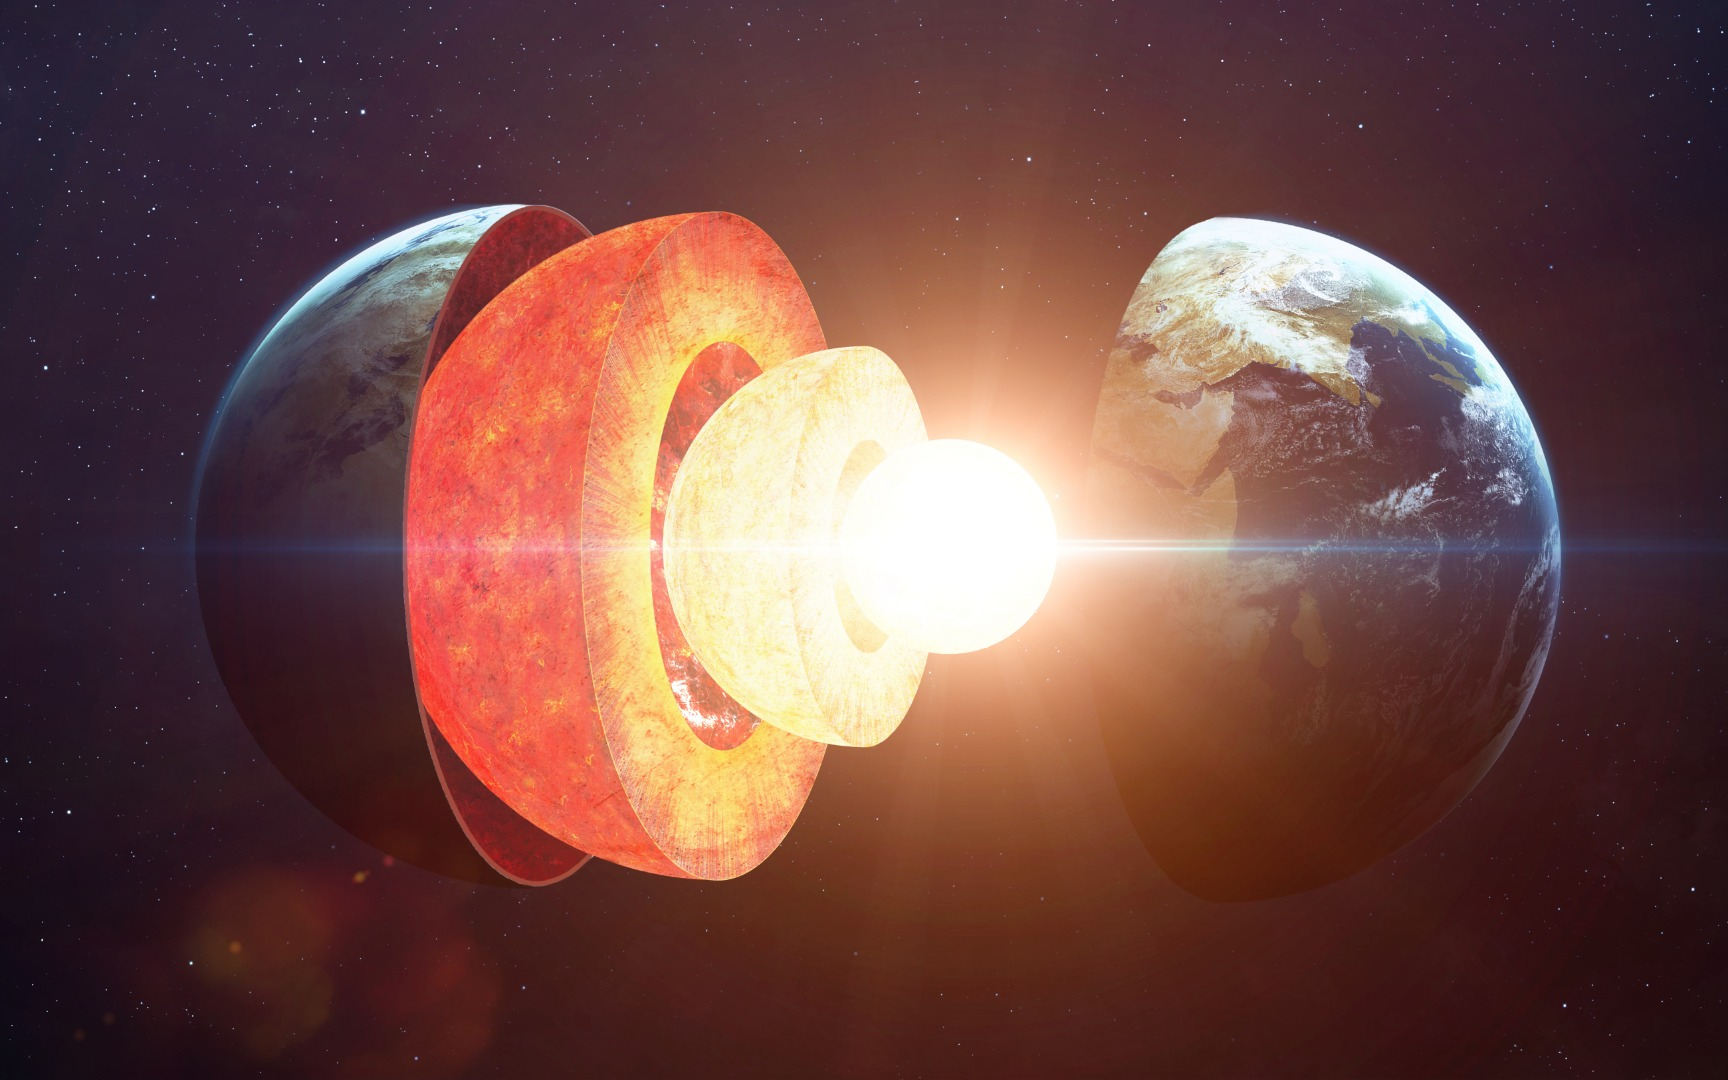 Ancient crystals suggest Earth's core is 4 billion years younger than the planet